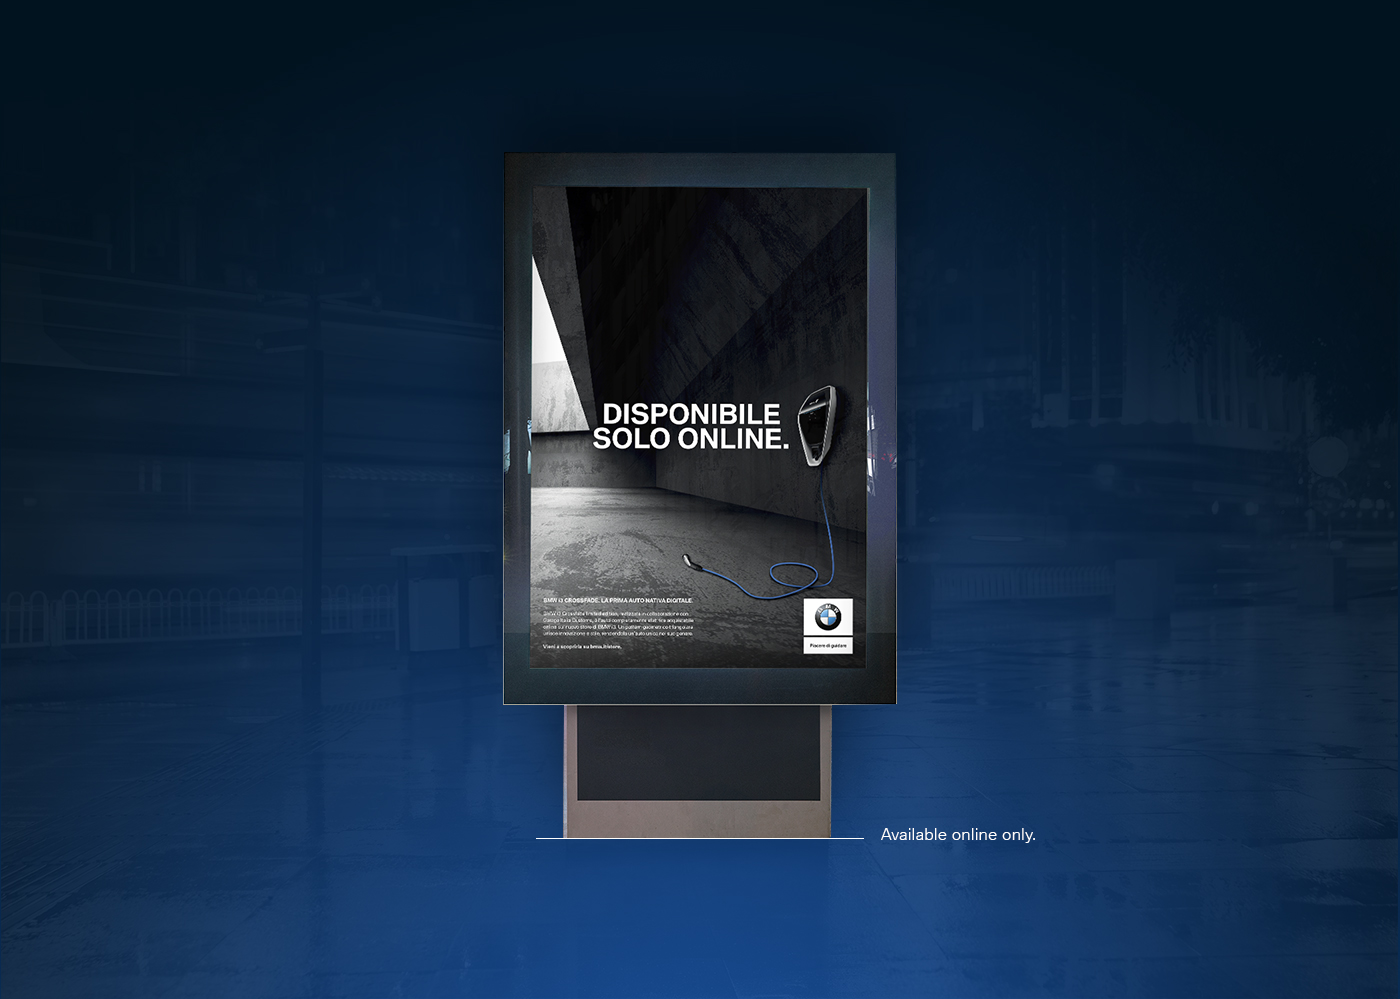 BMW I3 print online store digital atl banner launch crossfade limited edition